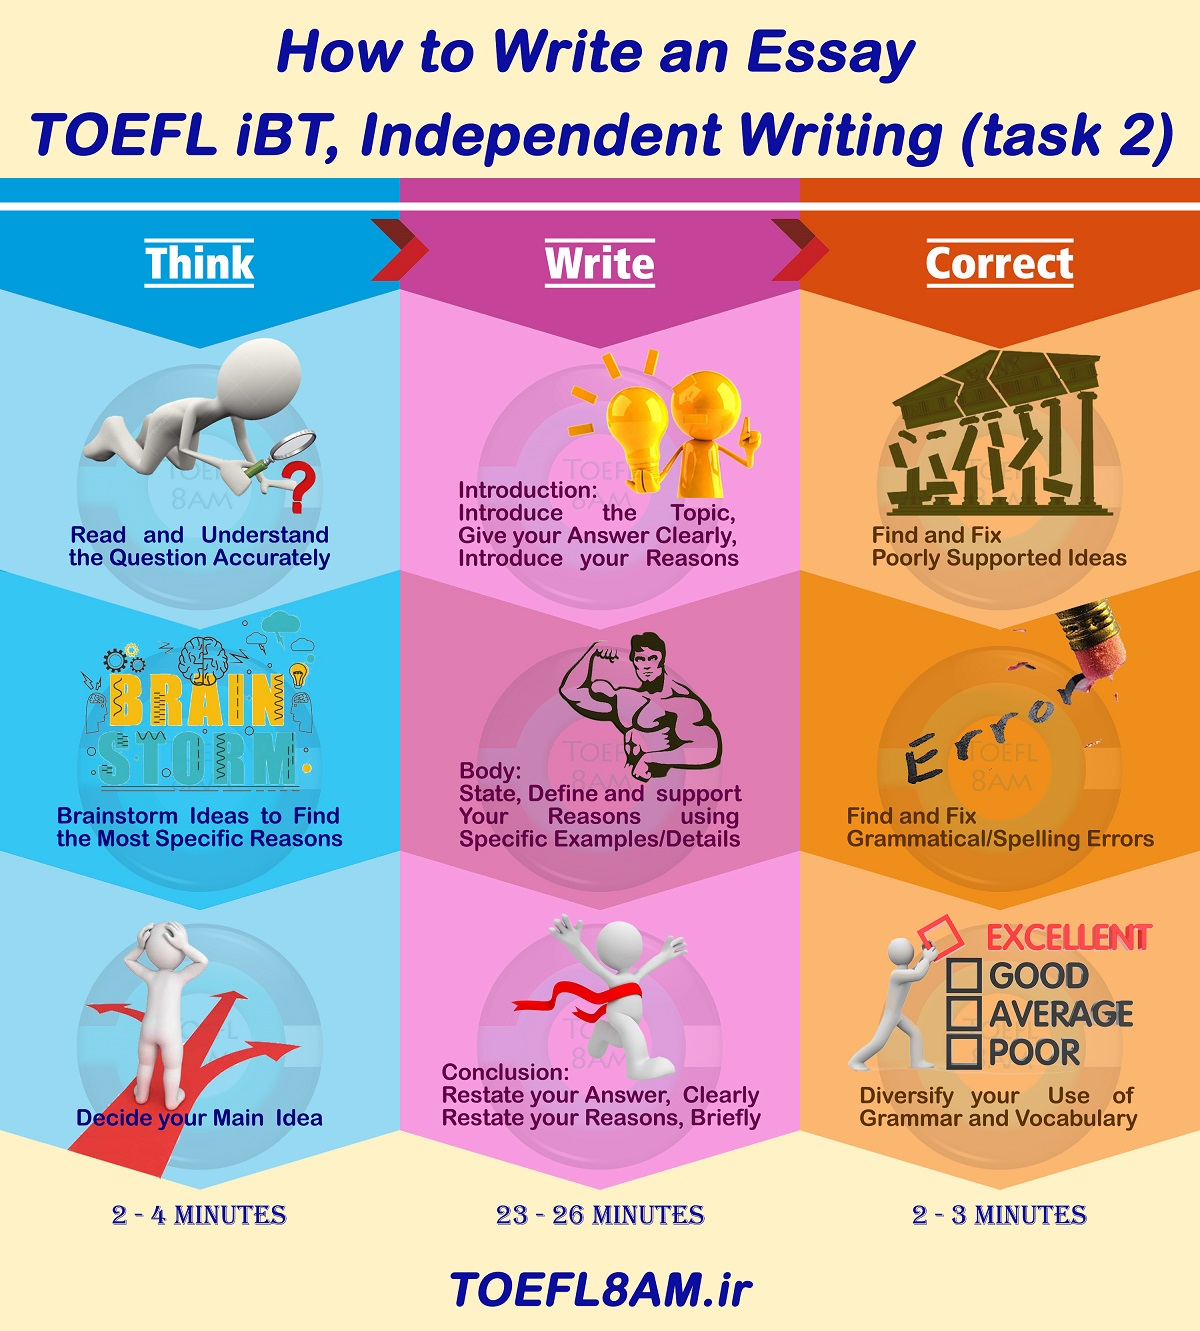 9 steps to write an Independent Writing in TOEFL iBT infographic